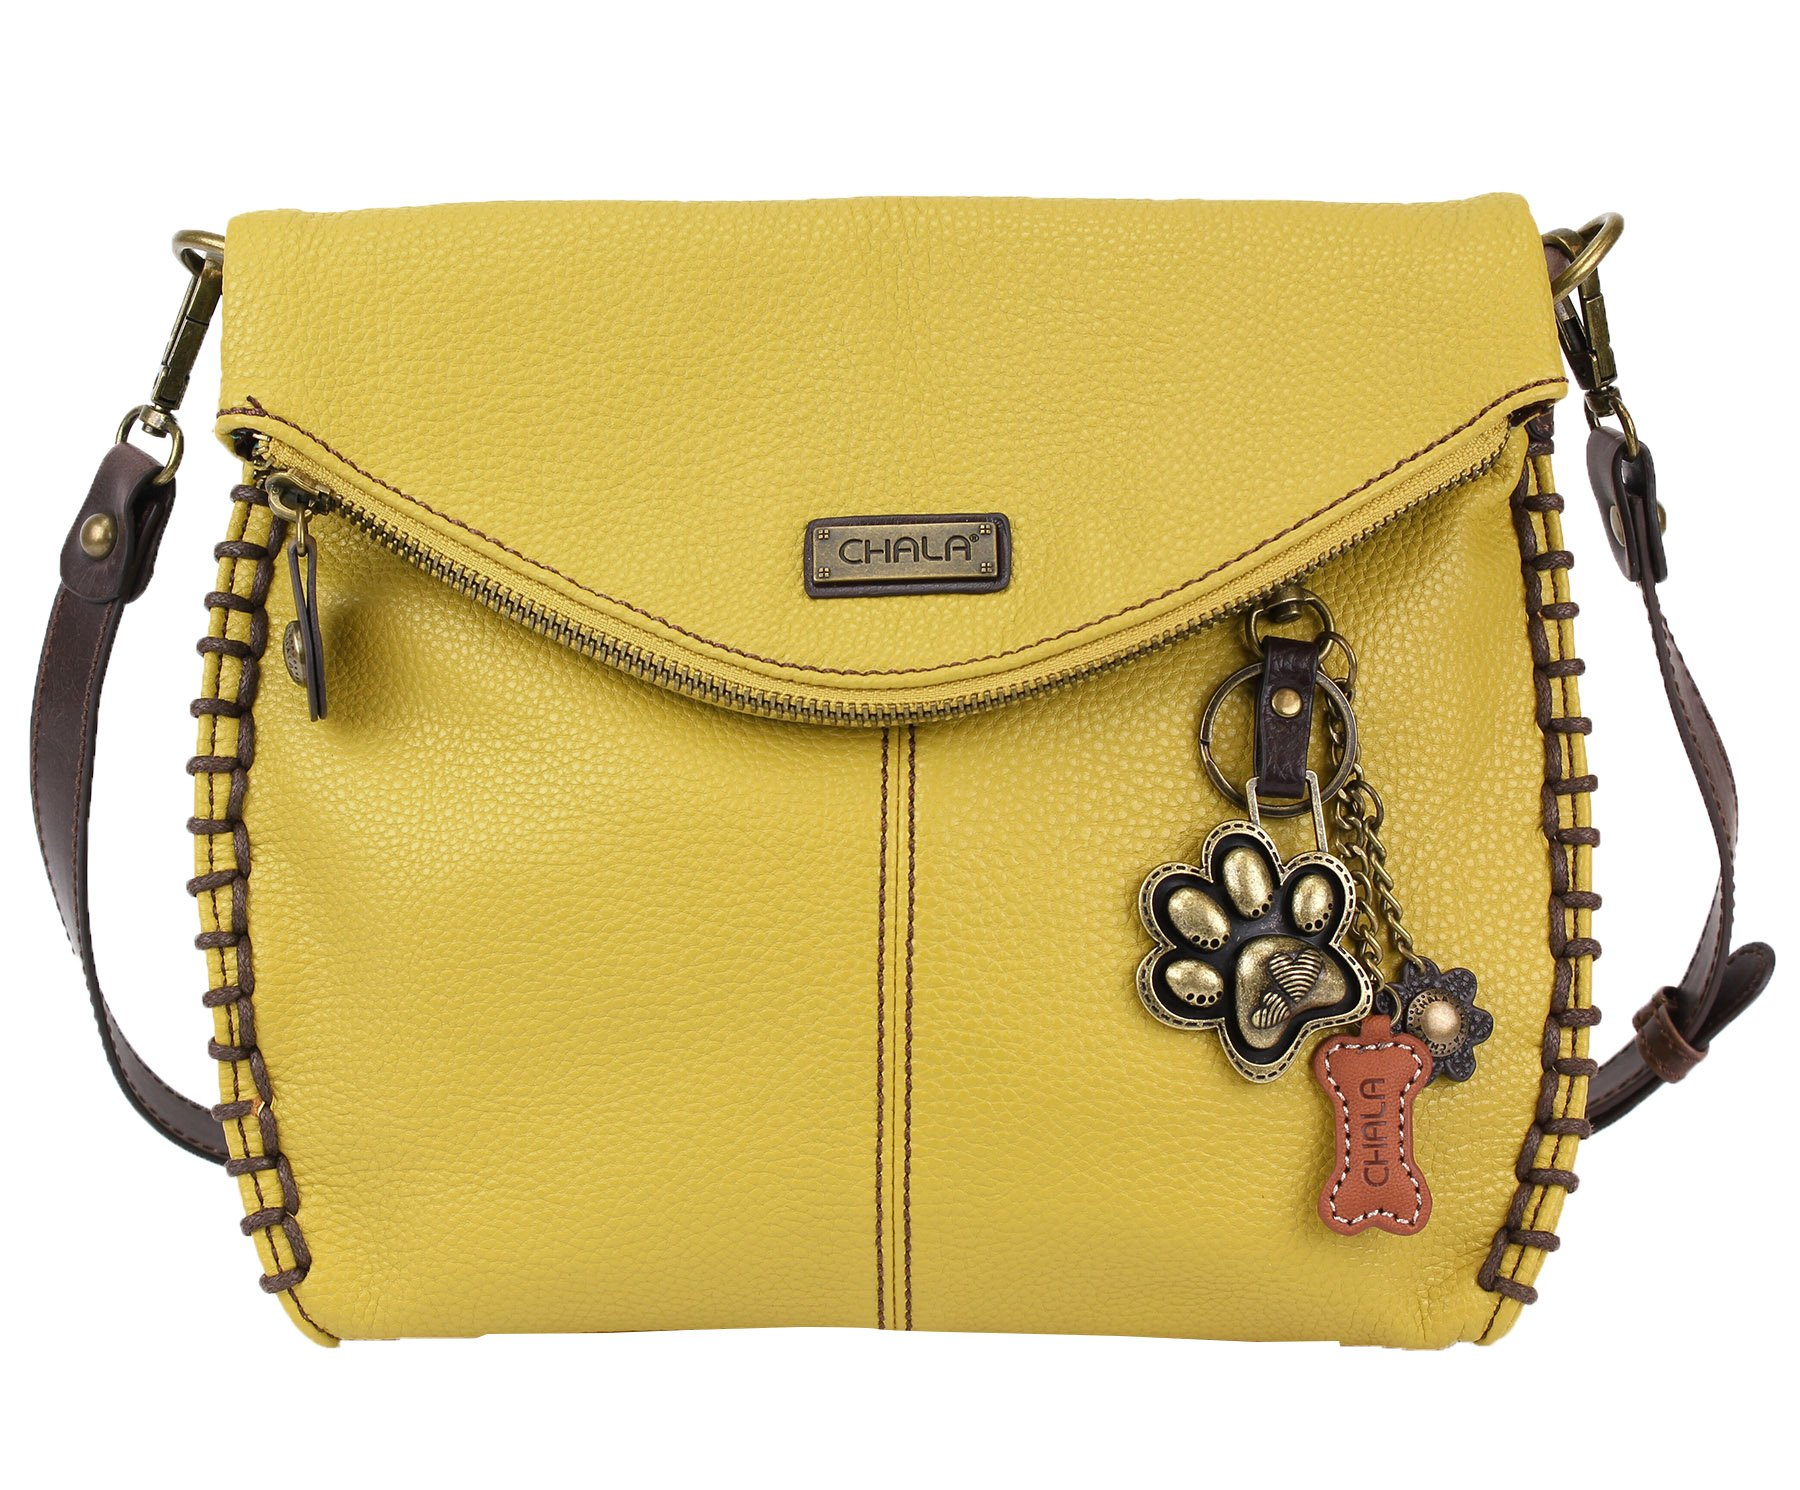 Chala Charming Crossbody Bag With Flap Top | Flap and Zipper Mustard Cross-Body Purse or Shoulder Handbag with Metal Chain - Paw Print